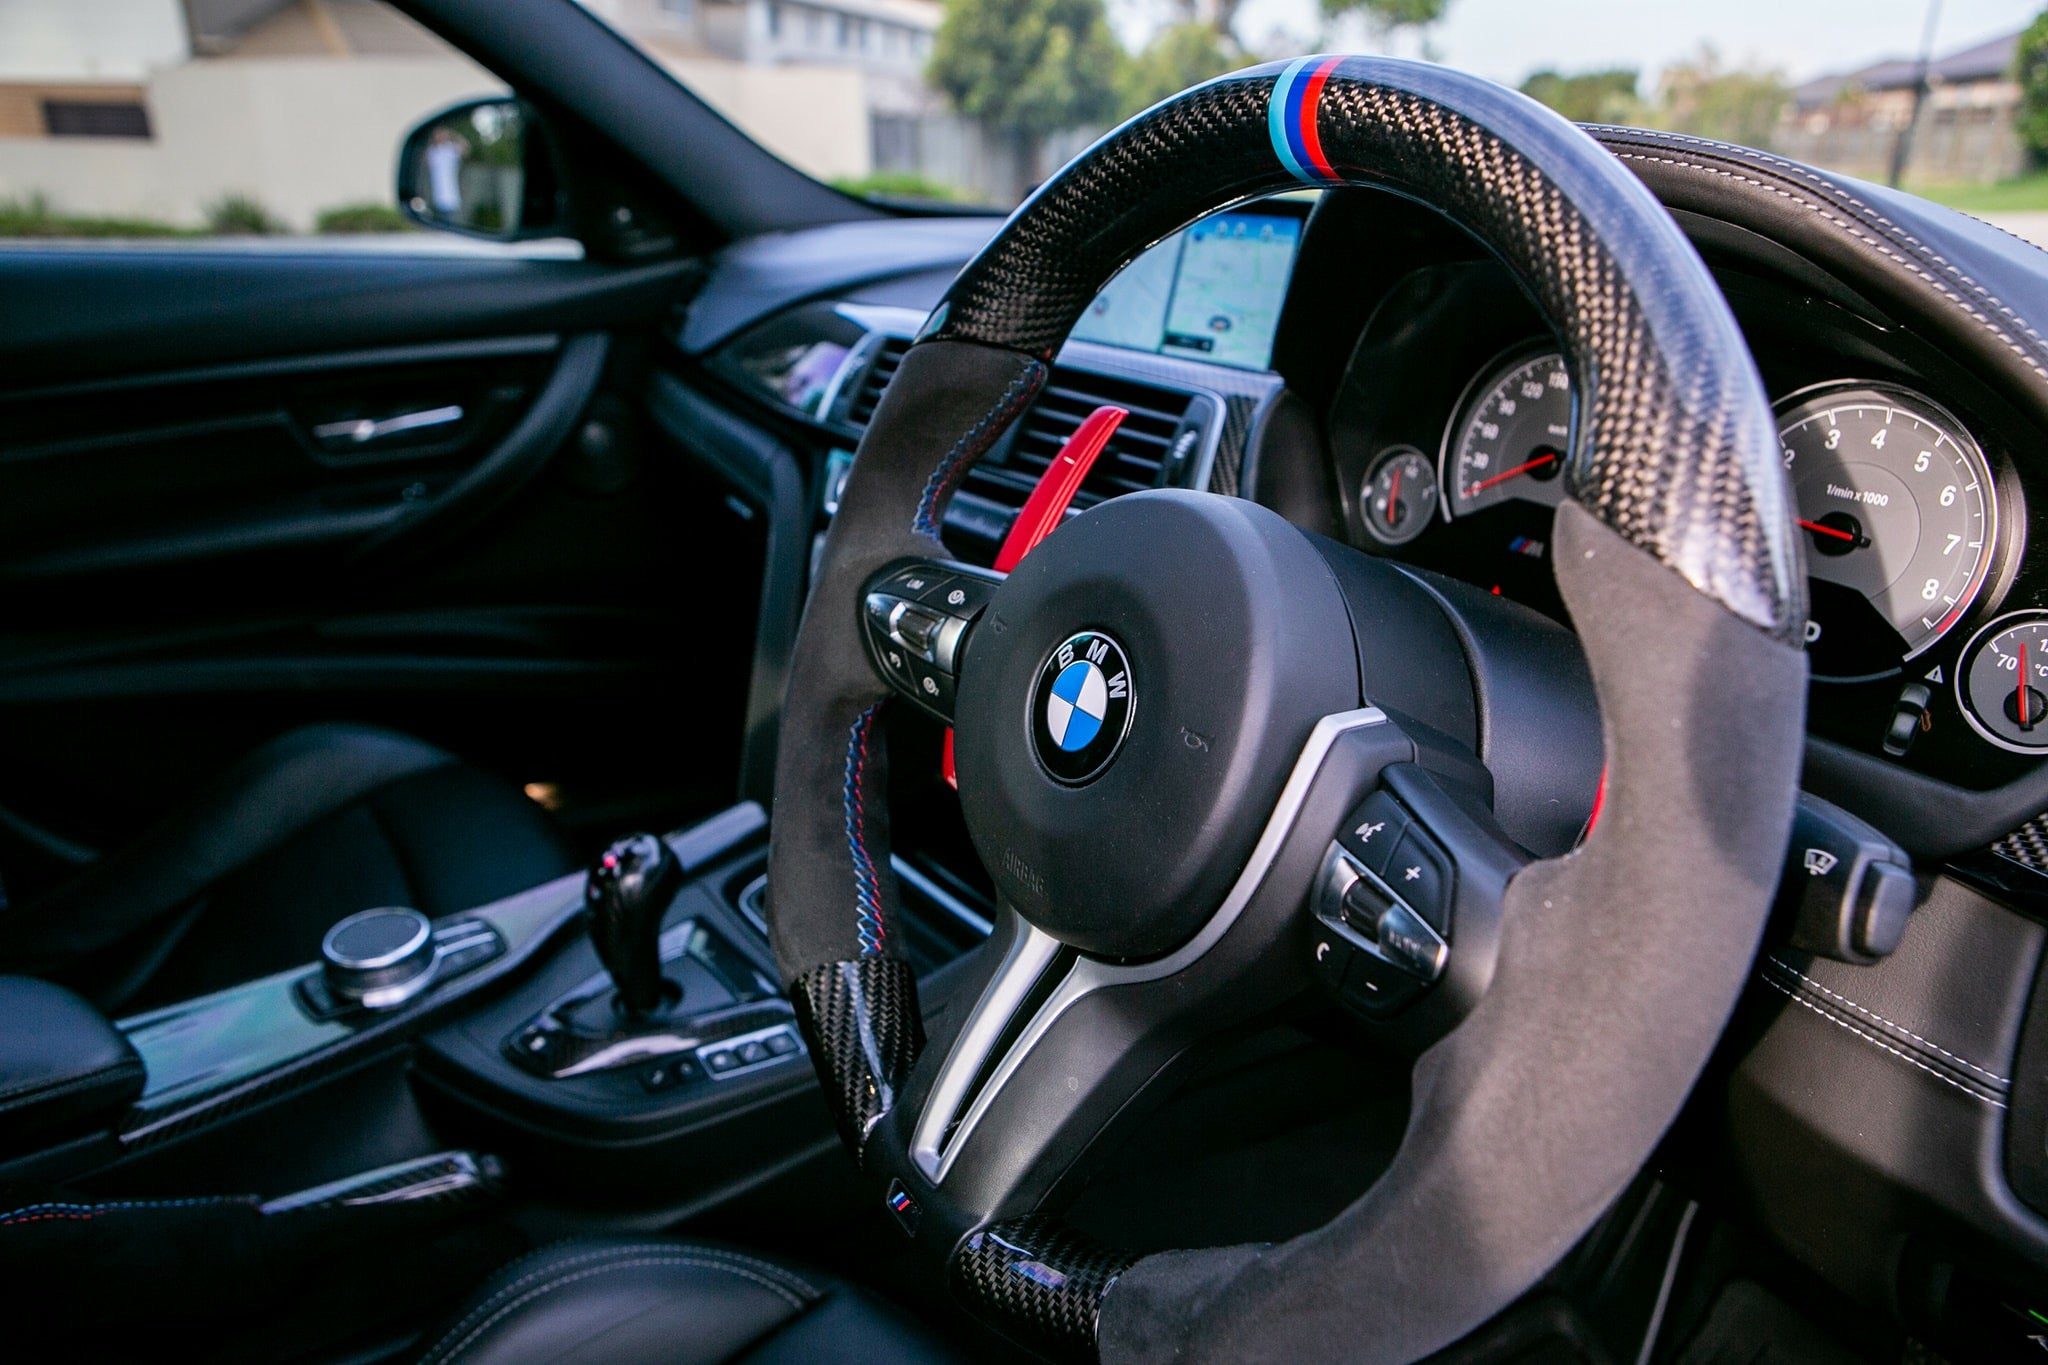 MODE Shift+ DCT Paddle Shifter (OEM Fit) BMW F-Series M suit M2/M3/M4/M5/M6 (F8X) X5M/X6M (F8X) - MODE Auto Concepts